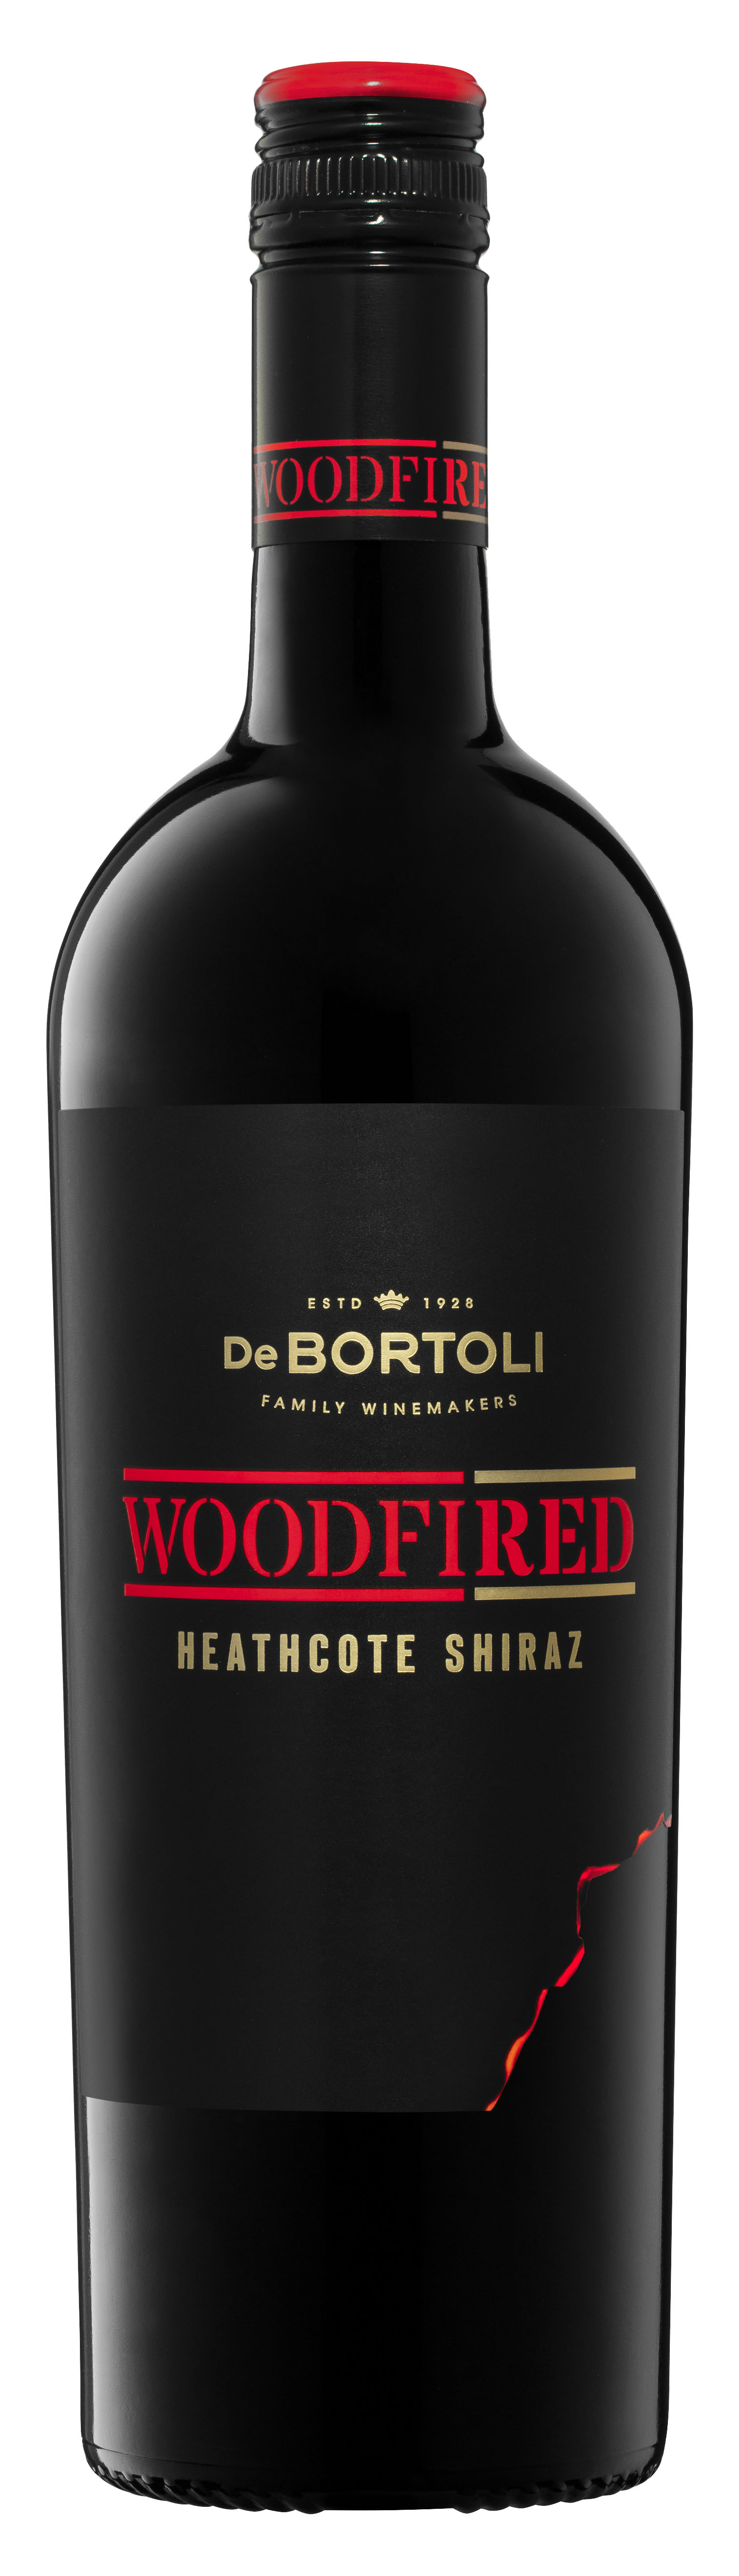 Vino Tinto Australiano Woodfired Heathcote Shiraz